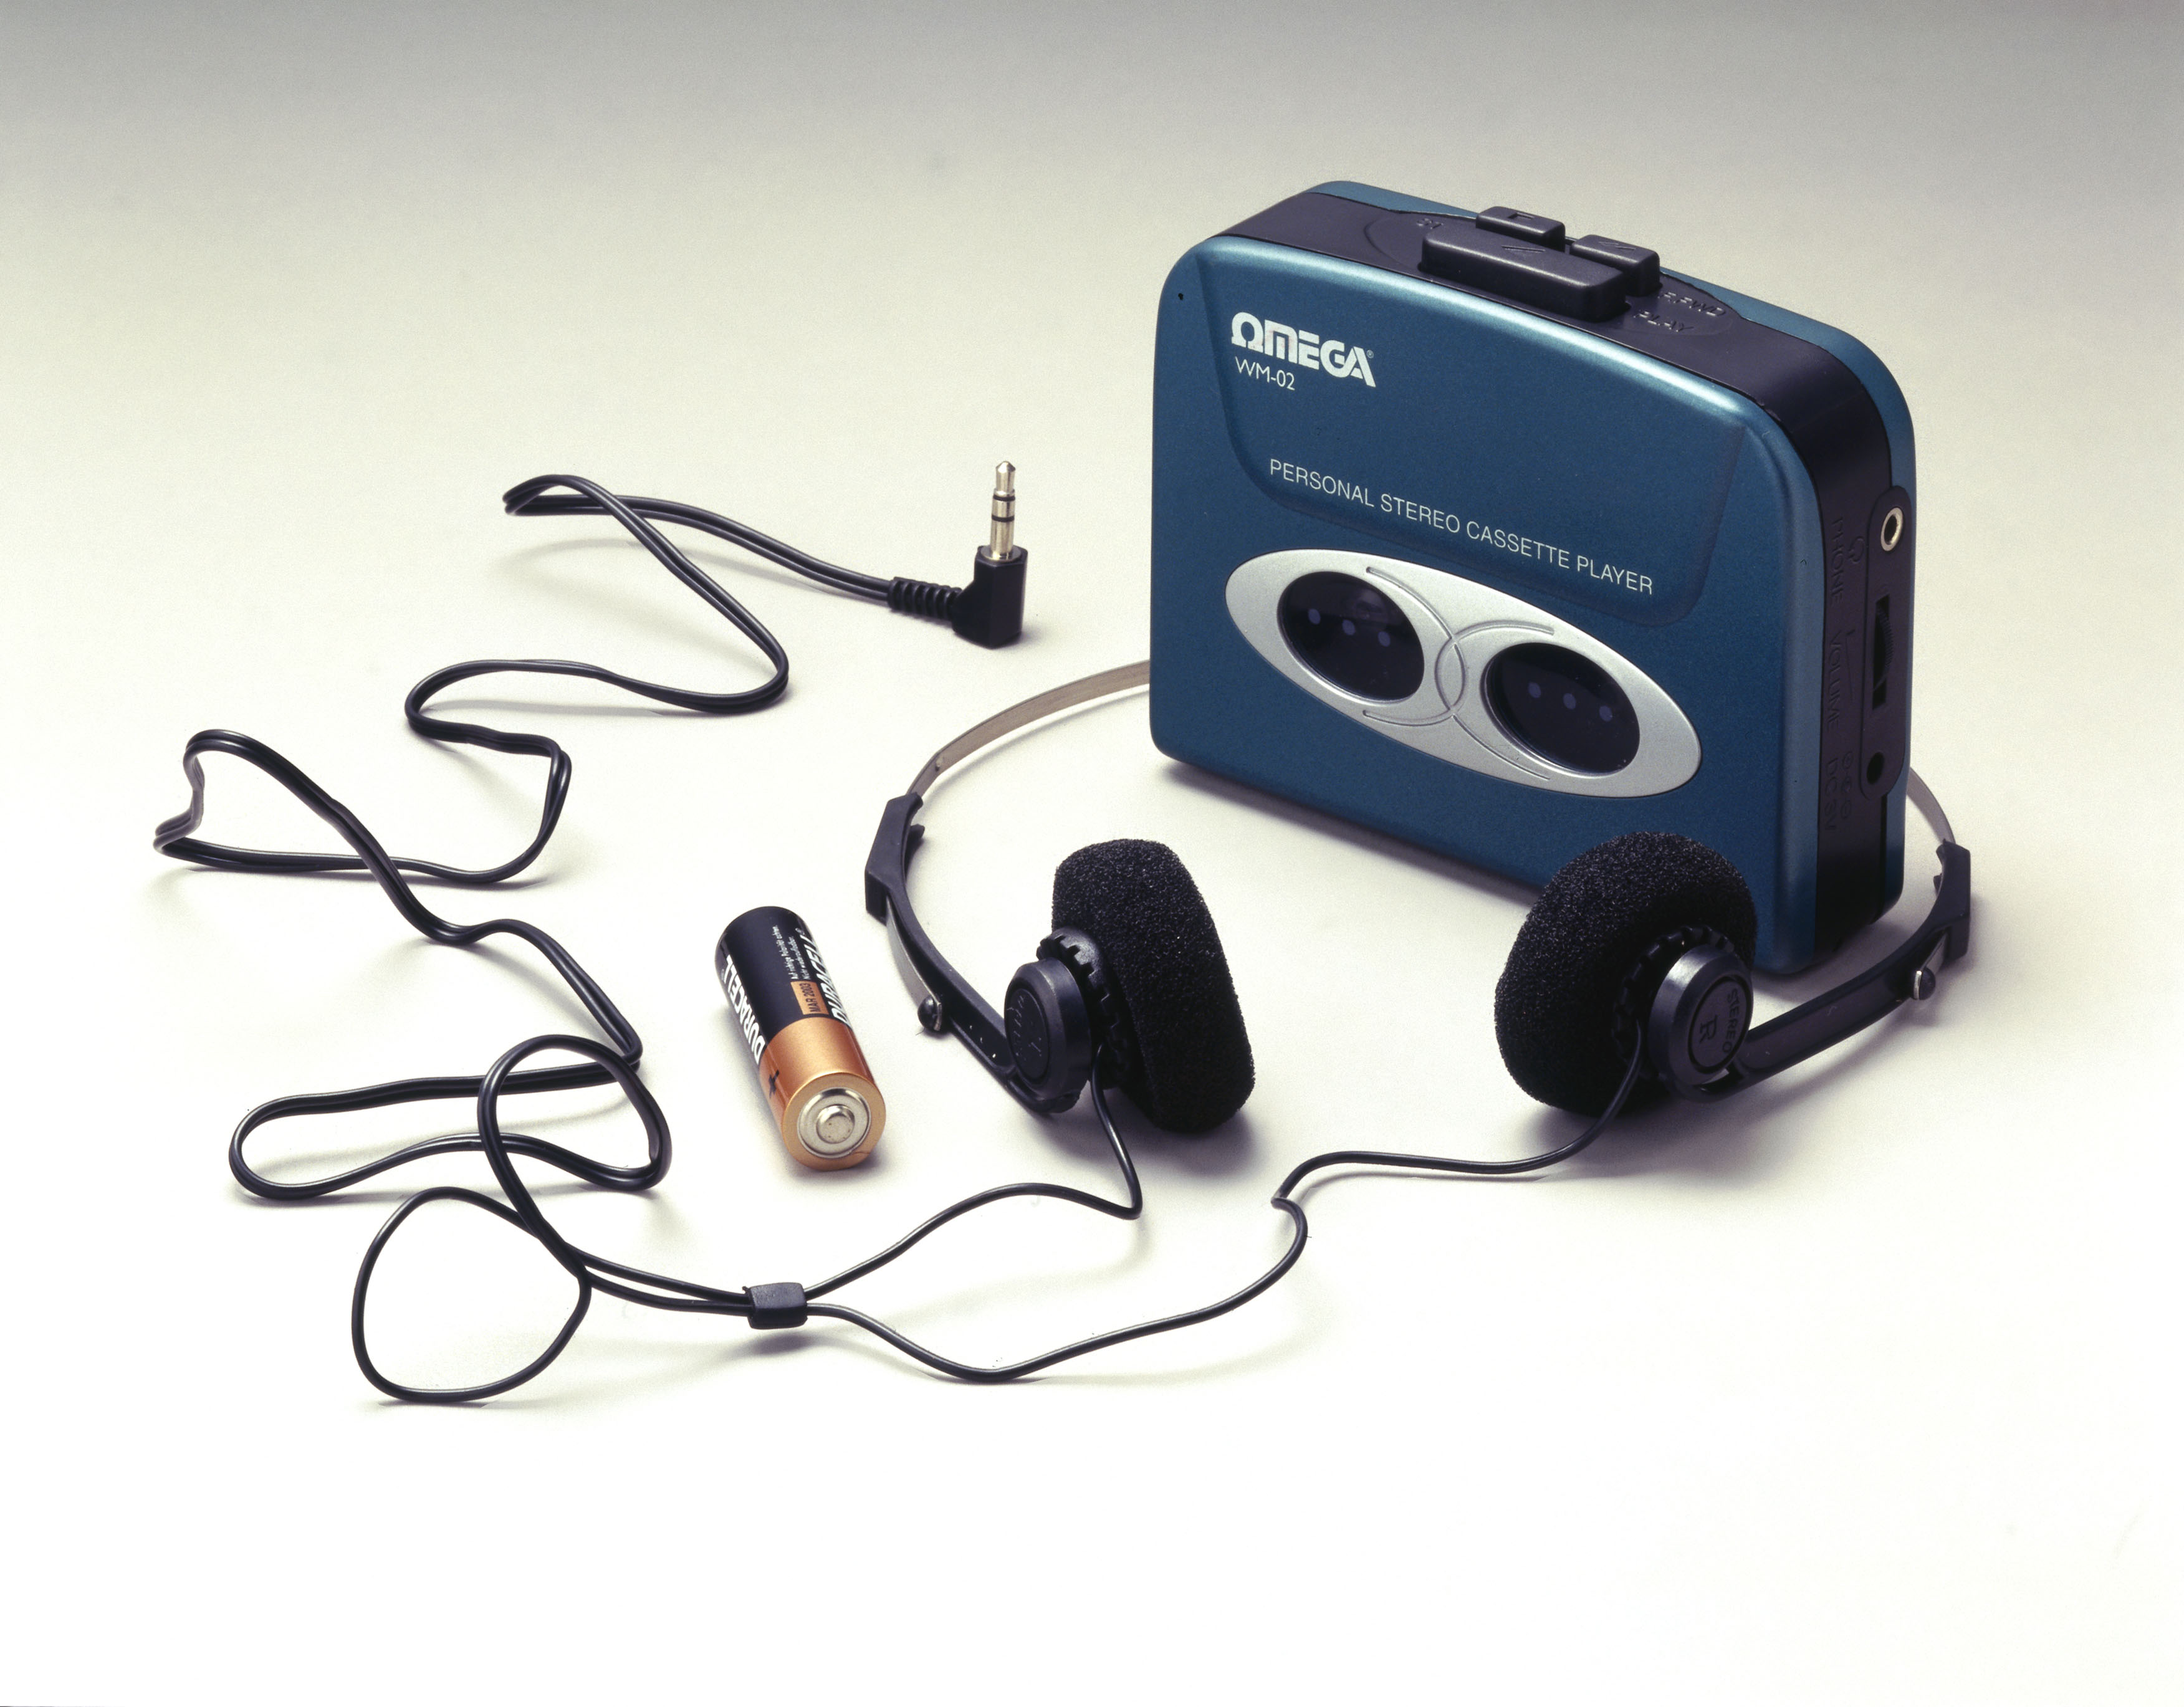 Omega personal stereo cassette player, c 1998.